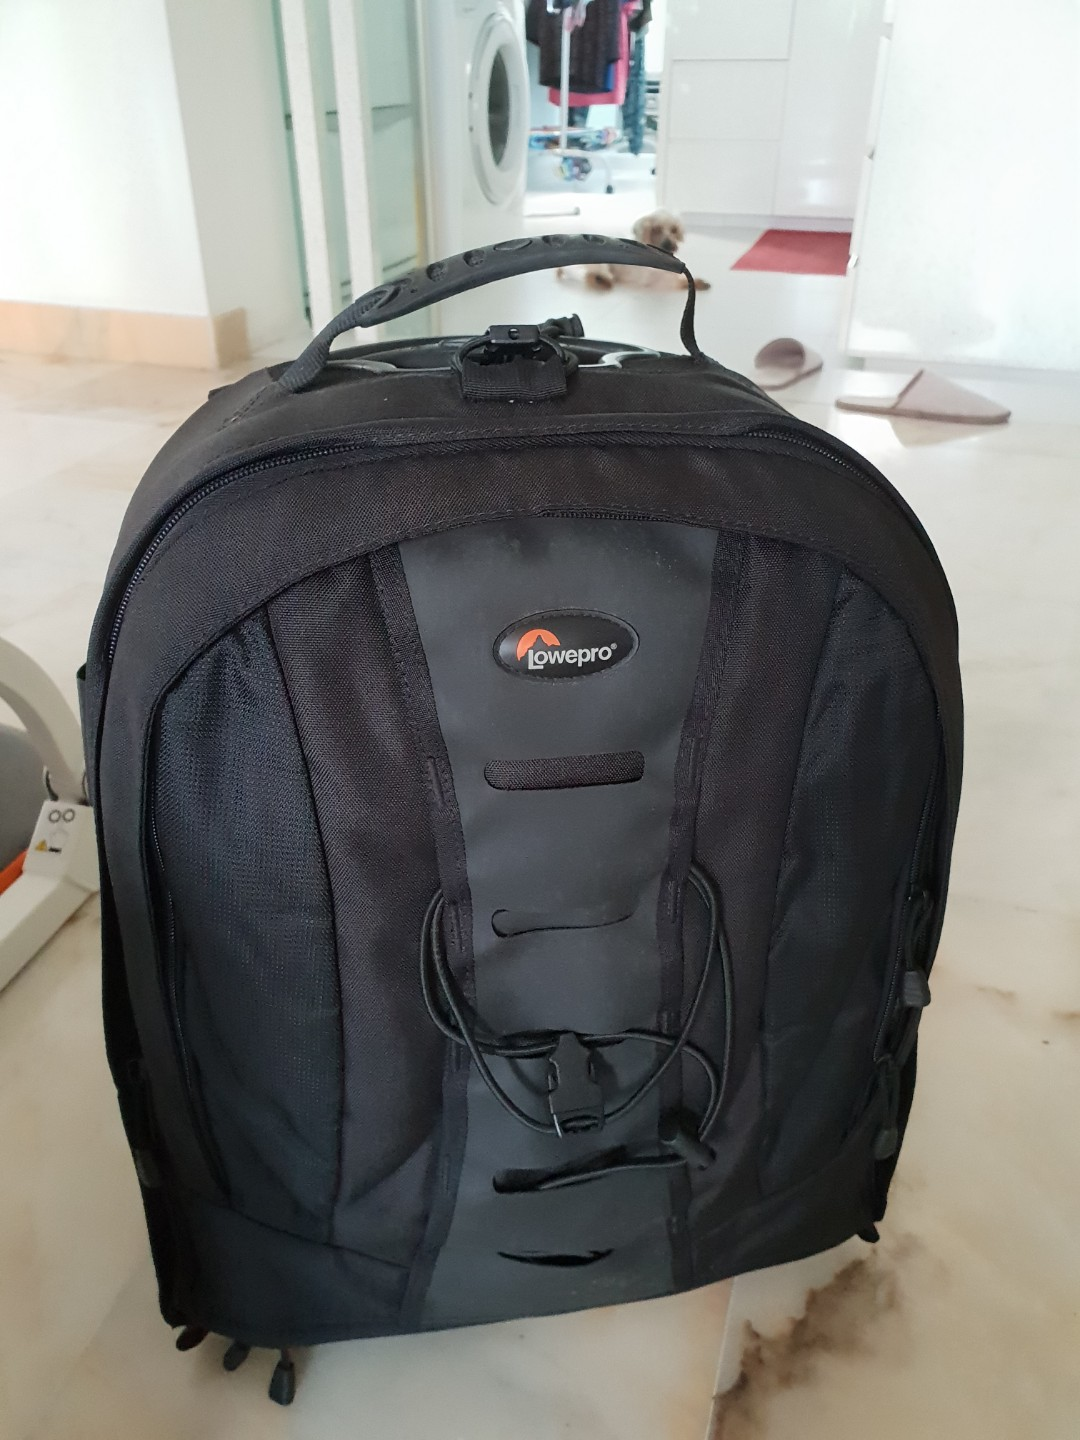 Lowepro Camera Bag With Rollers Photography Accessories Streetline Sh 120 Photo